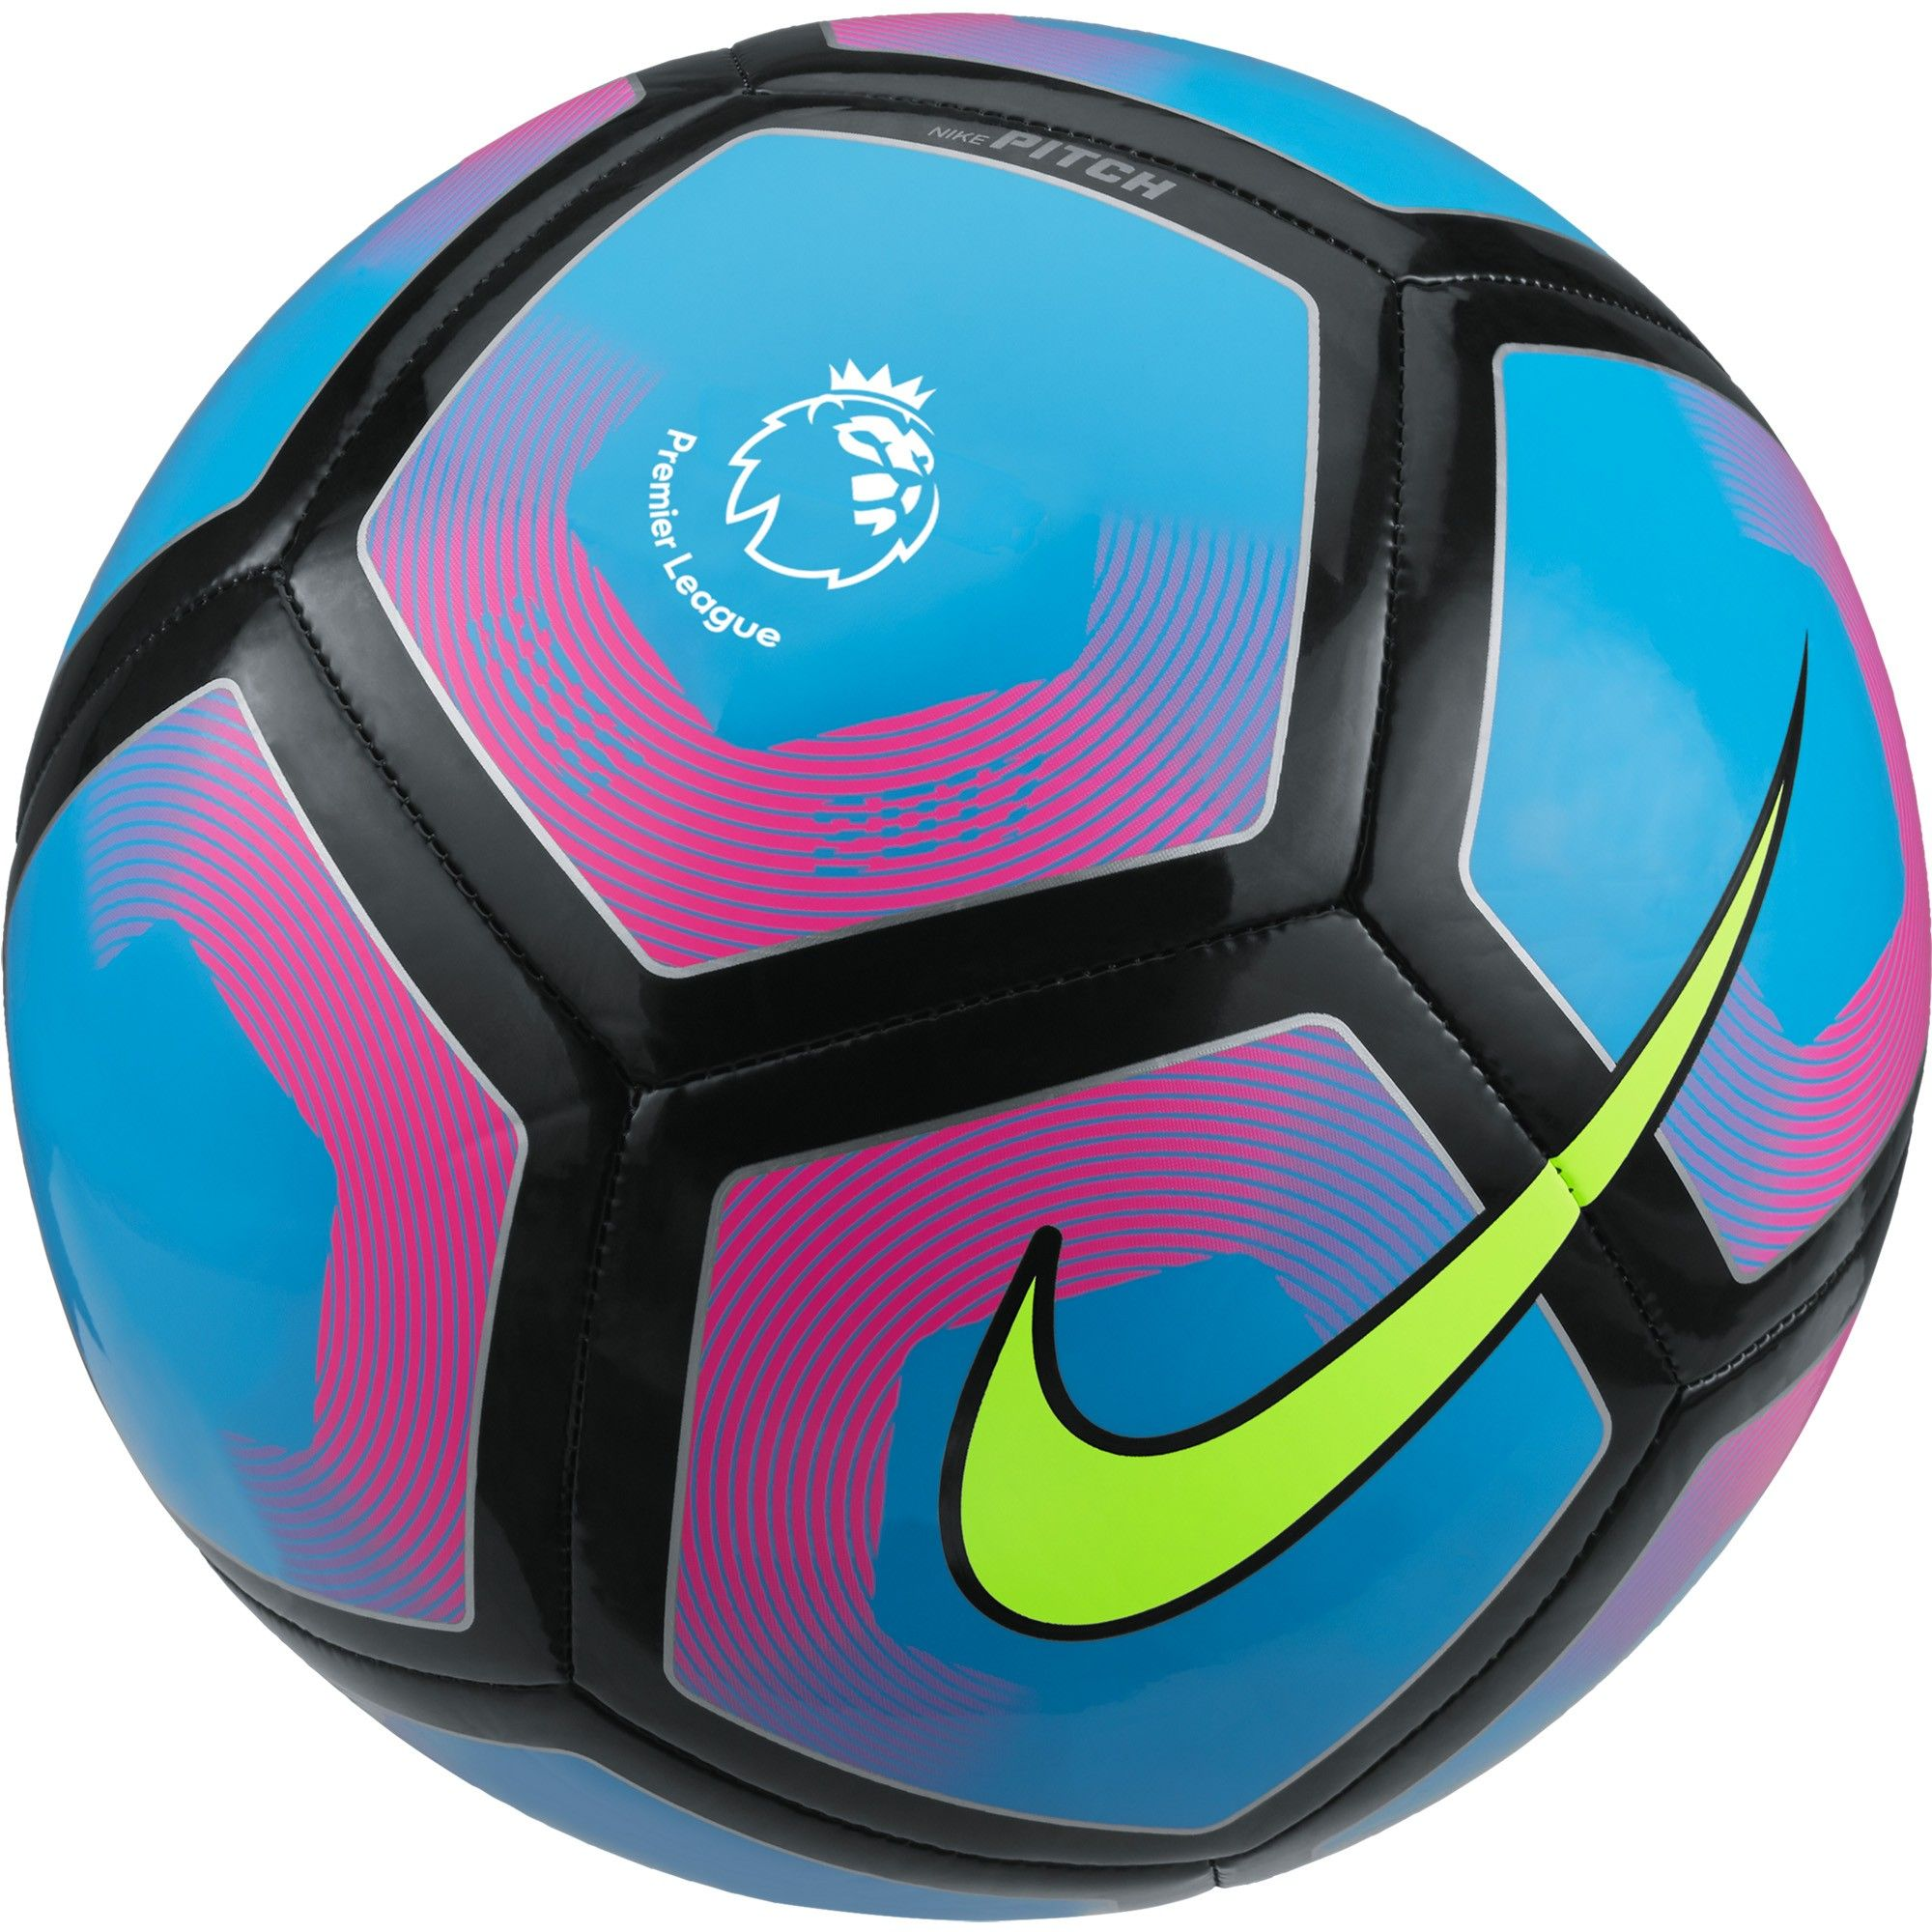 Nike Pitch 2016 17 Premier League Football Soccer Ball Soccer Balls Soccer